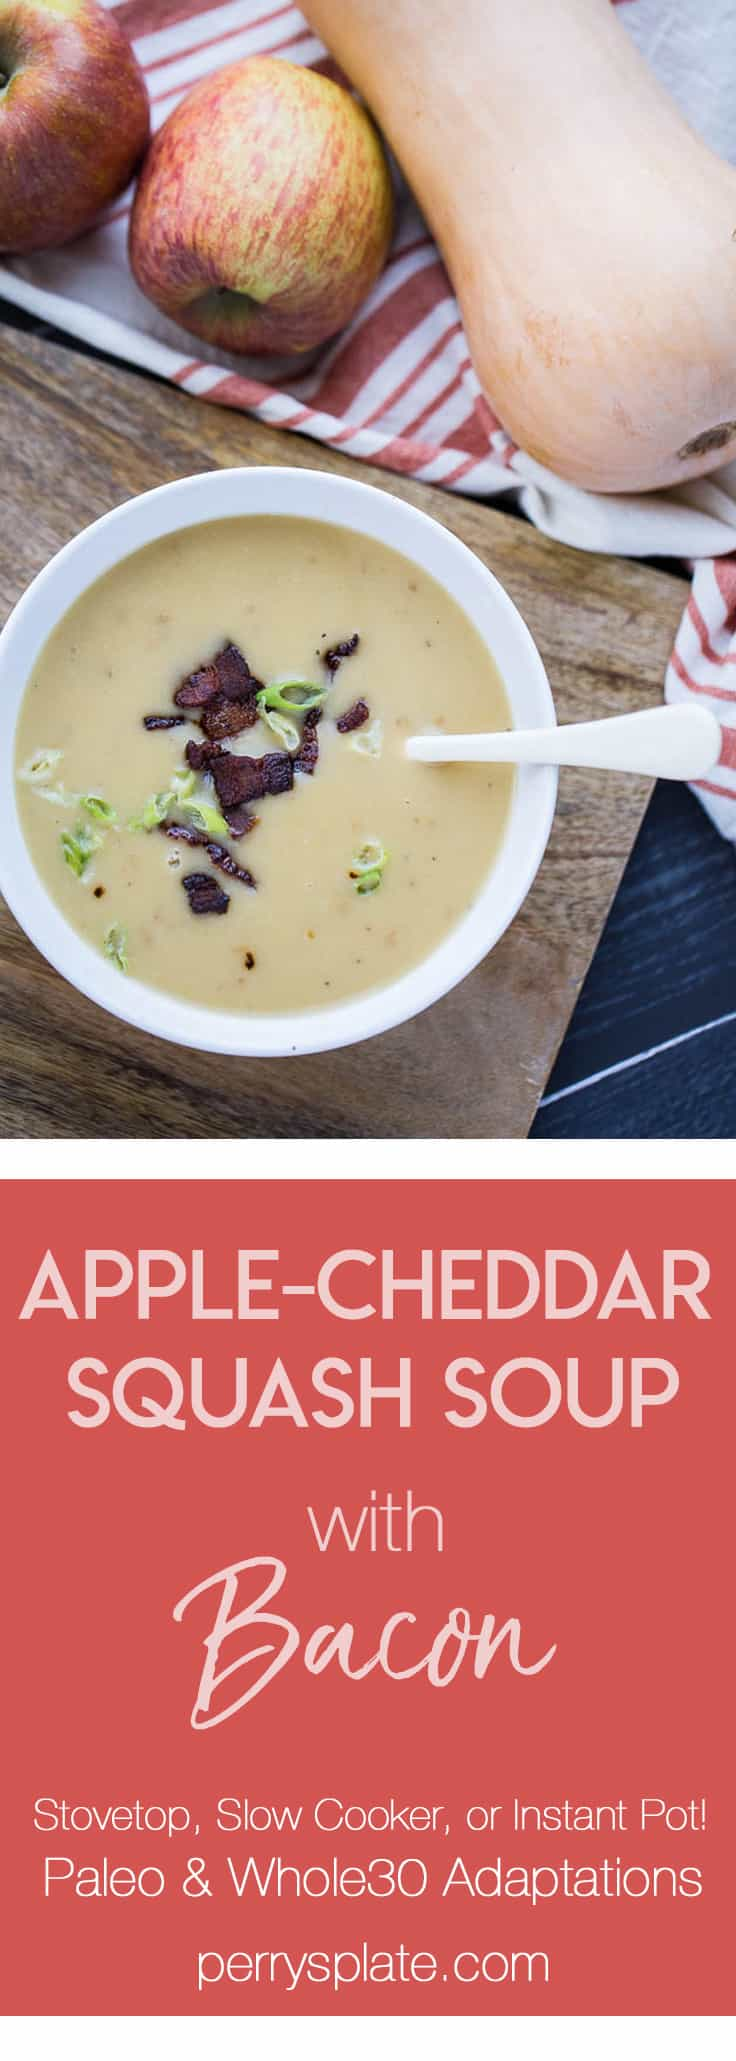 Apple-Squash Soup with Bacon | perrysplate.com | paleo recipes | Whole30 recipes | soup recipes